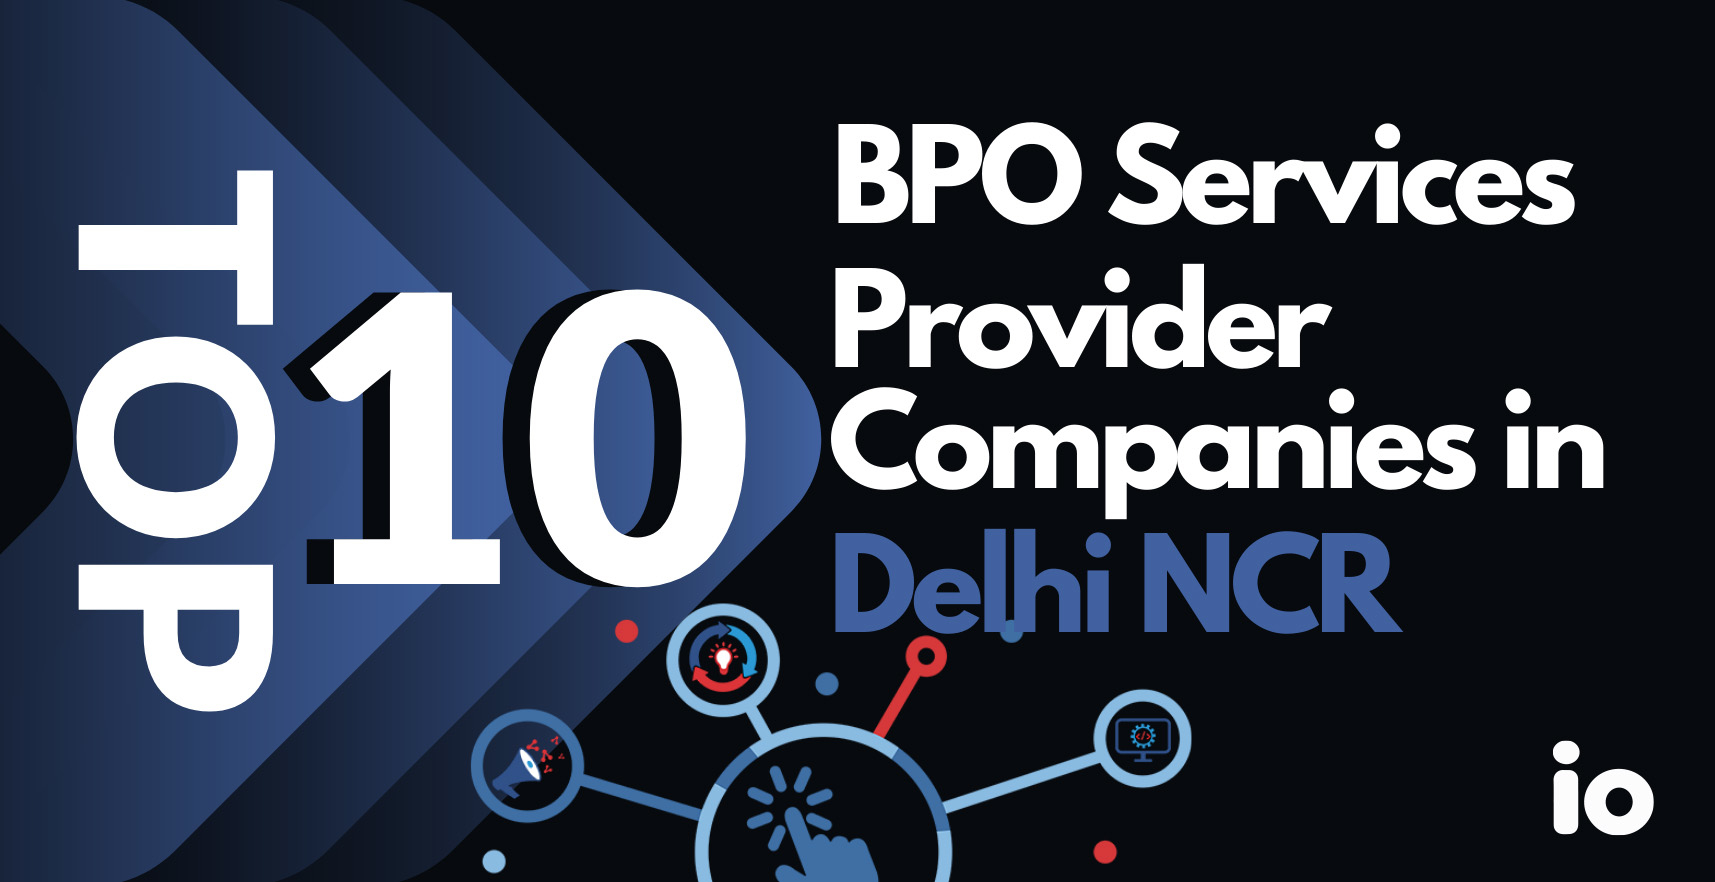 Business Process Outsourcing Services Provider Companies